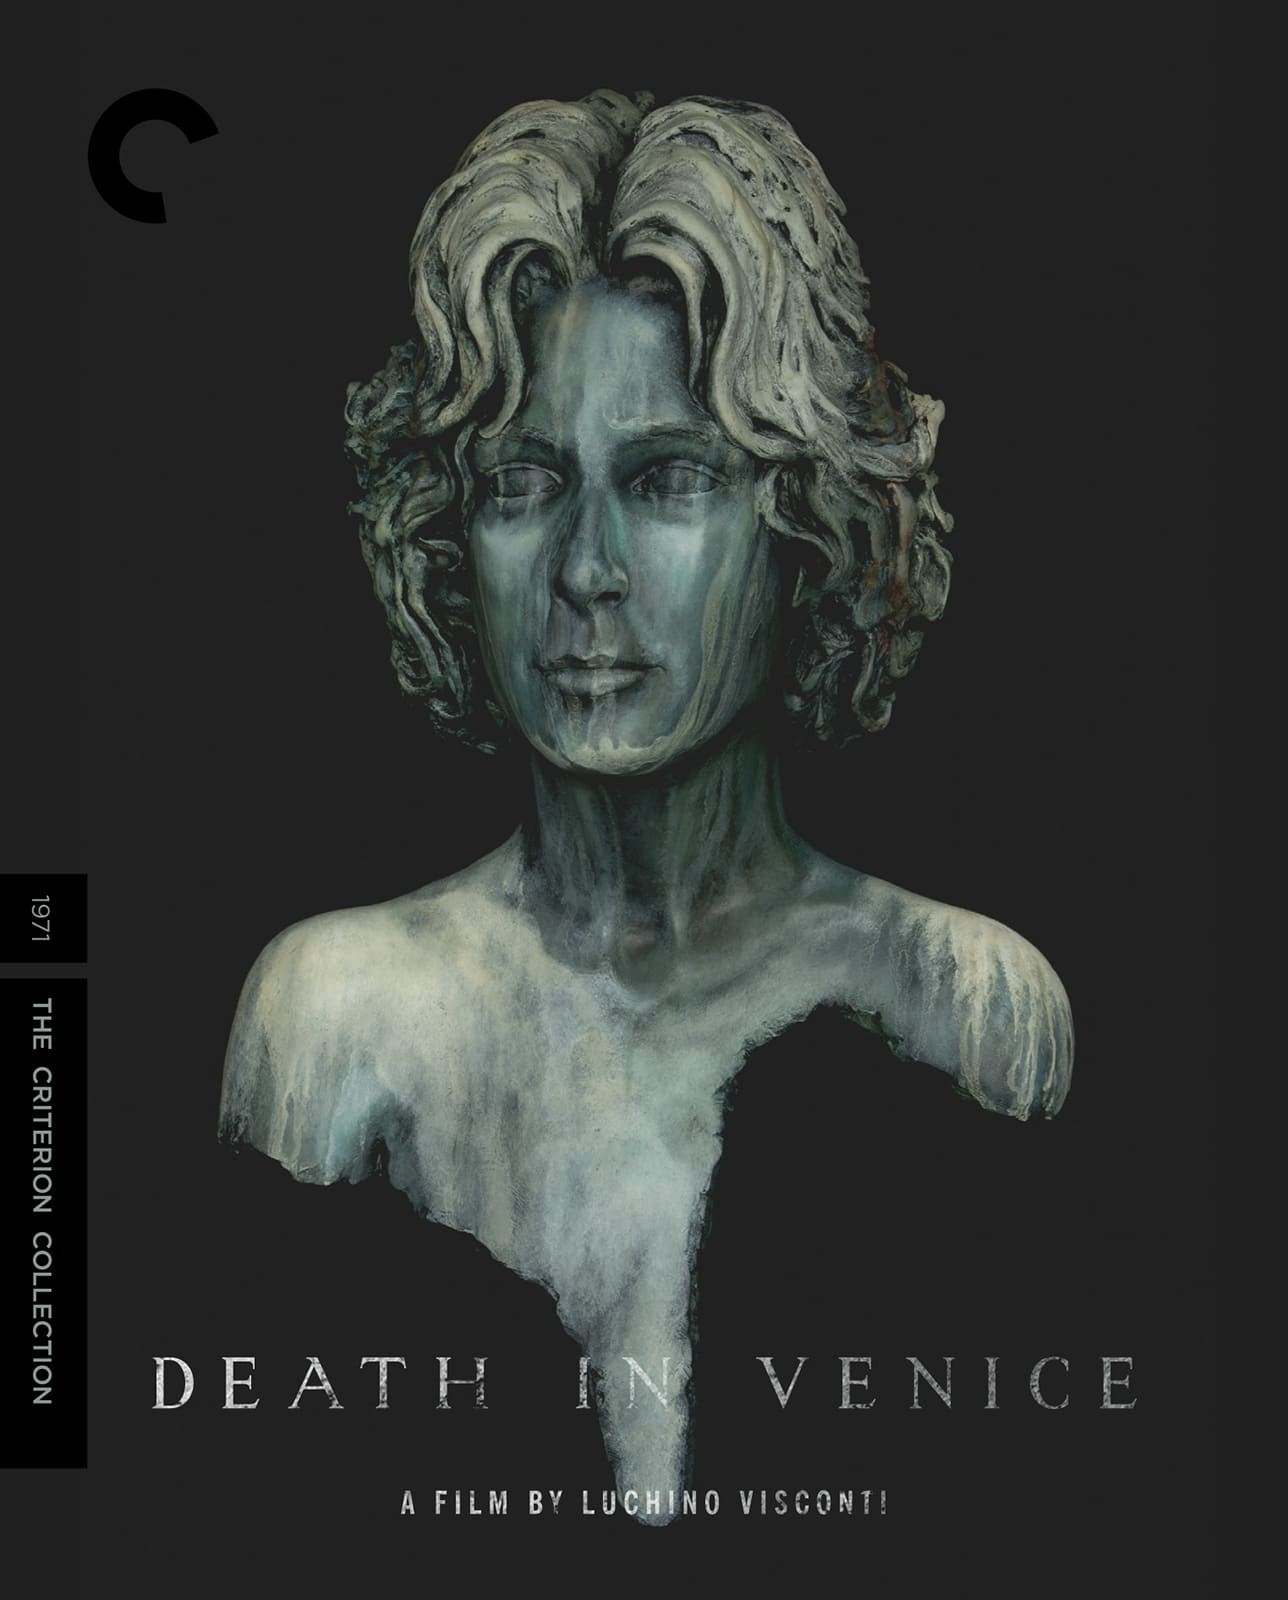 Death in Venice (The Criterion Collection)(Blu-ray)(Region A)(Pre-order / Feb 19)